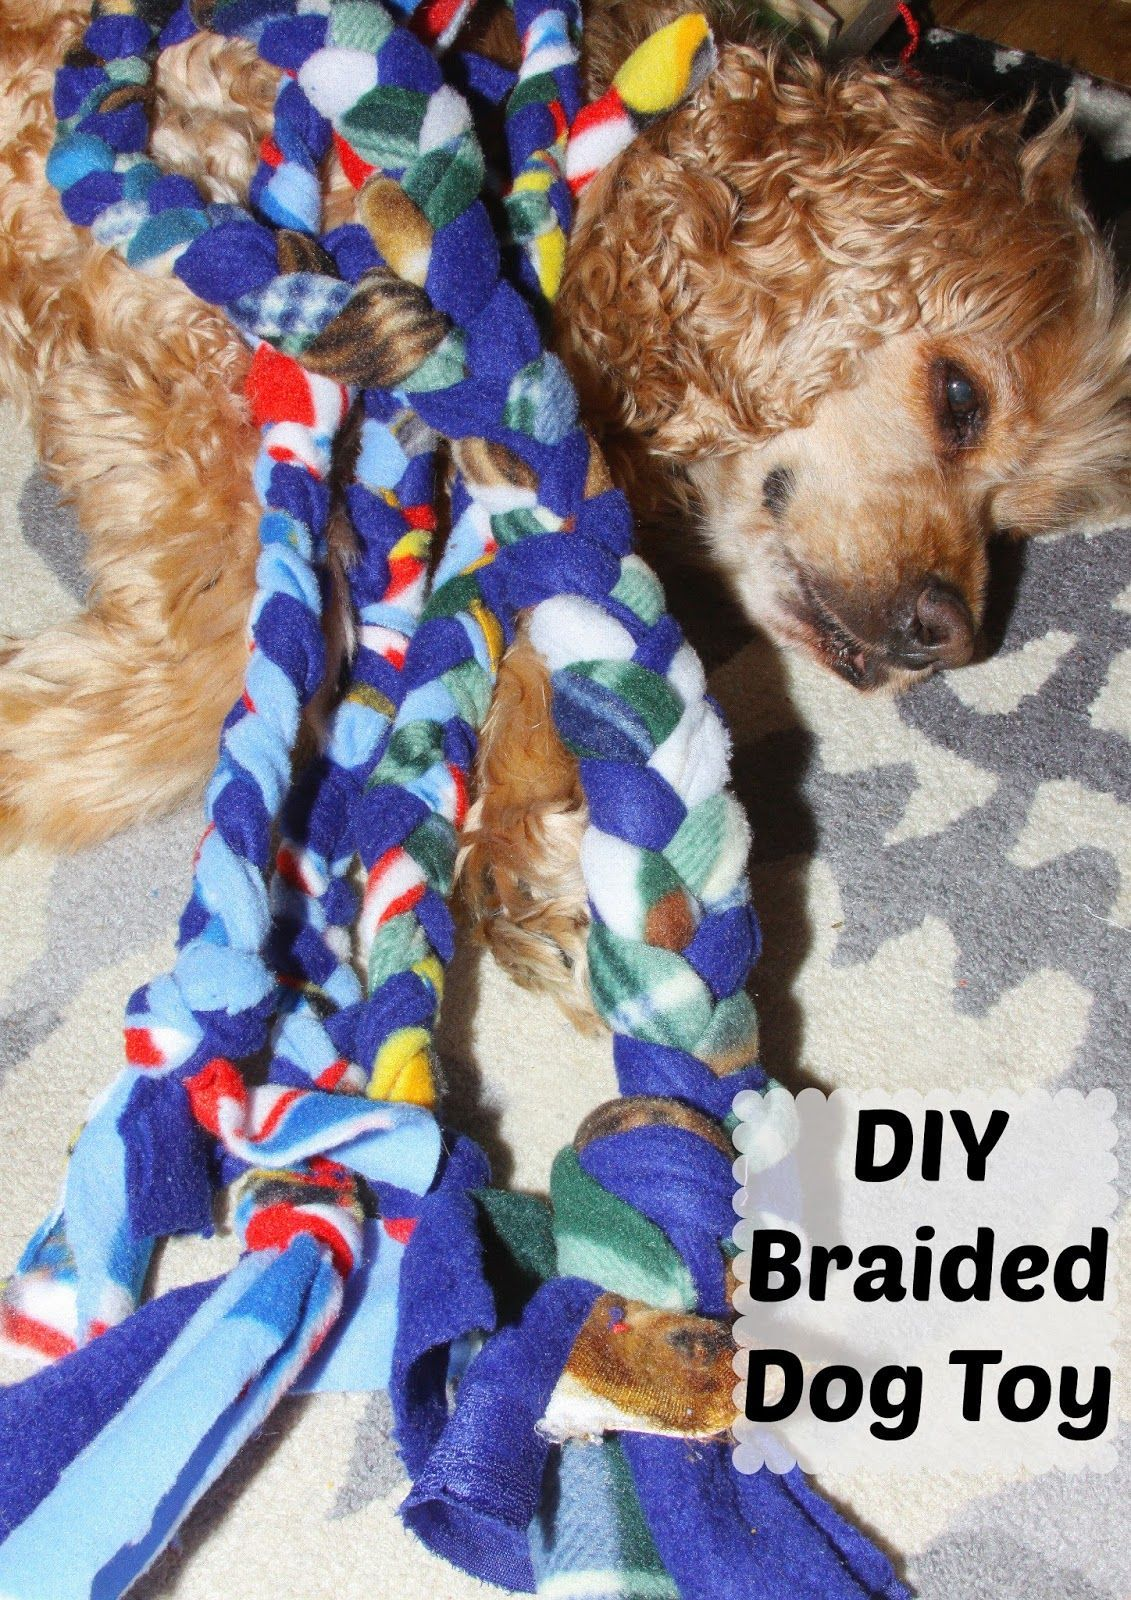 Diy Braided Fleece Dog Toys Cost Under 1 To Make And Are Great